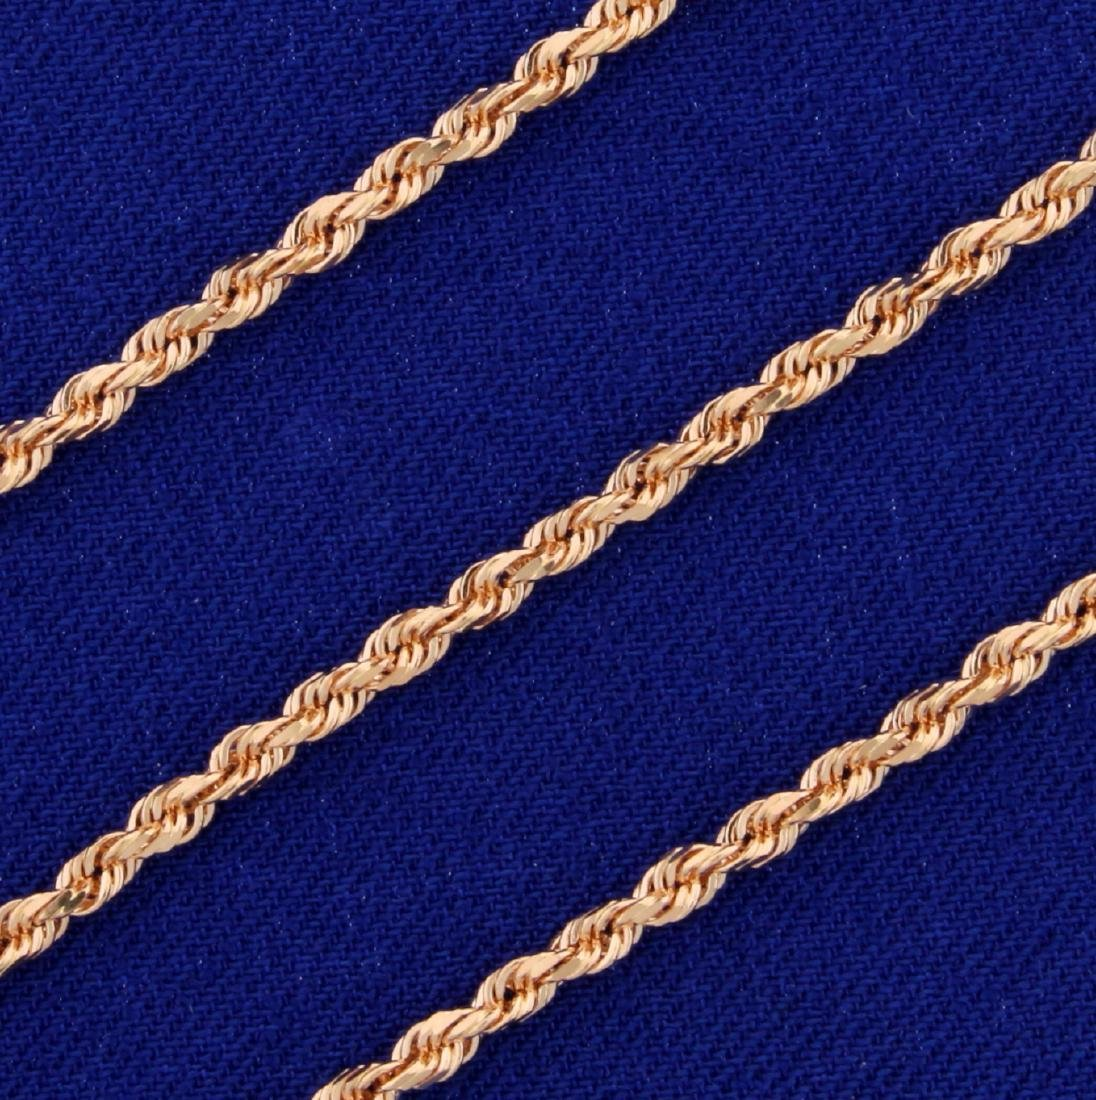 16 Inch Rope Neck Chain in 14K Rose Gold - 2